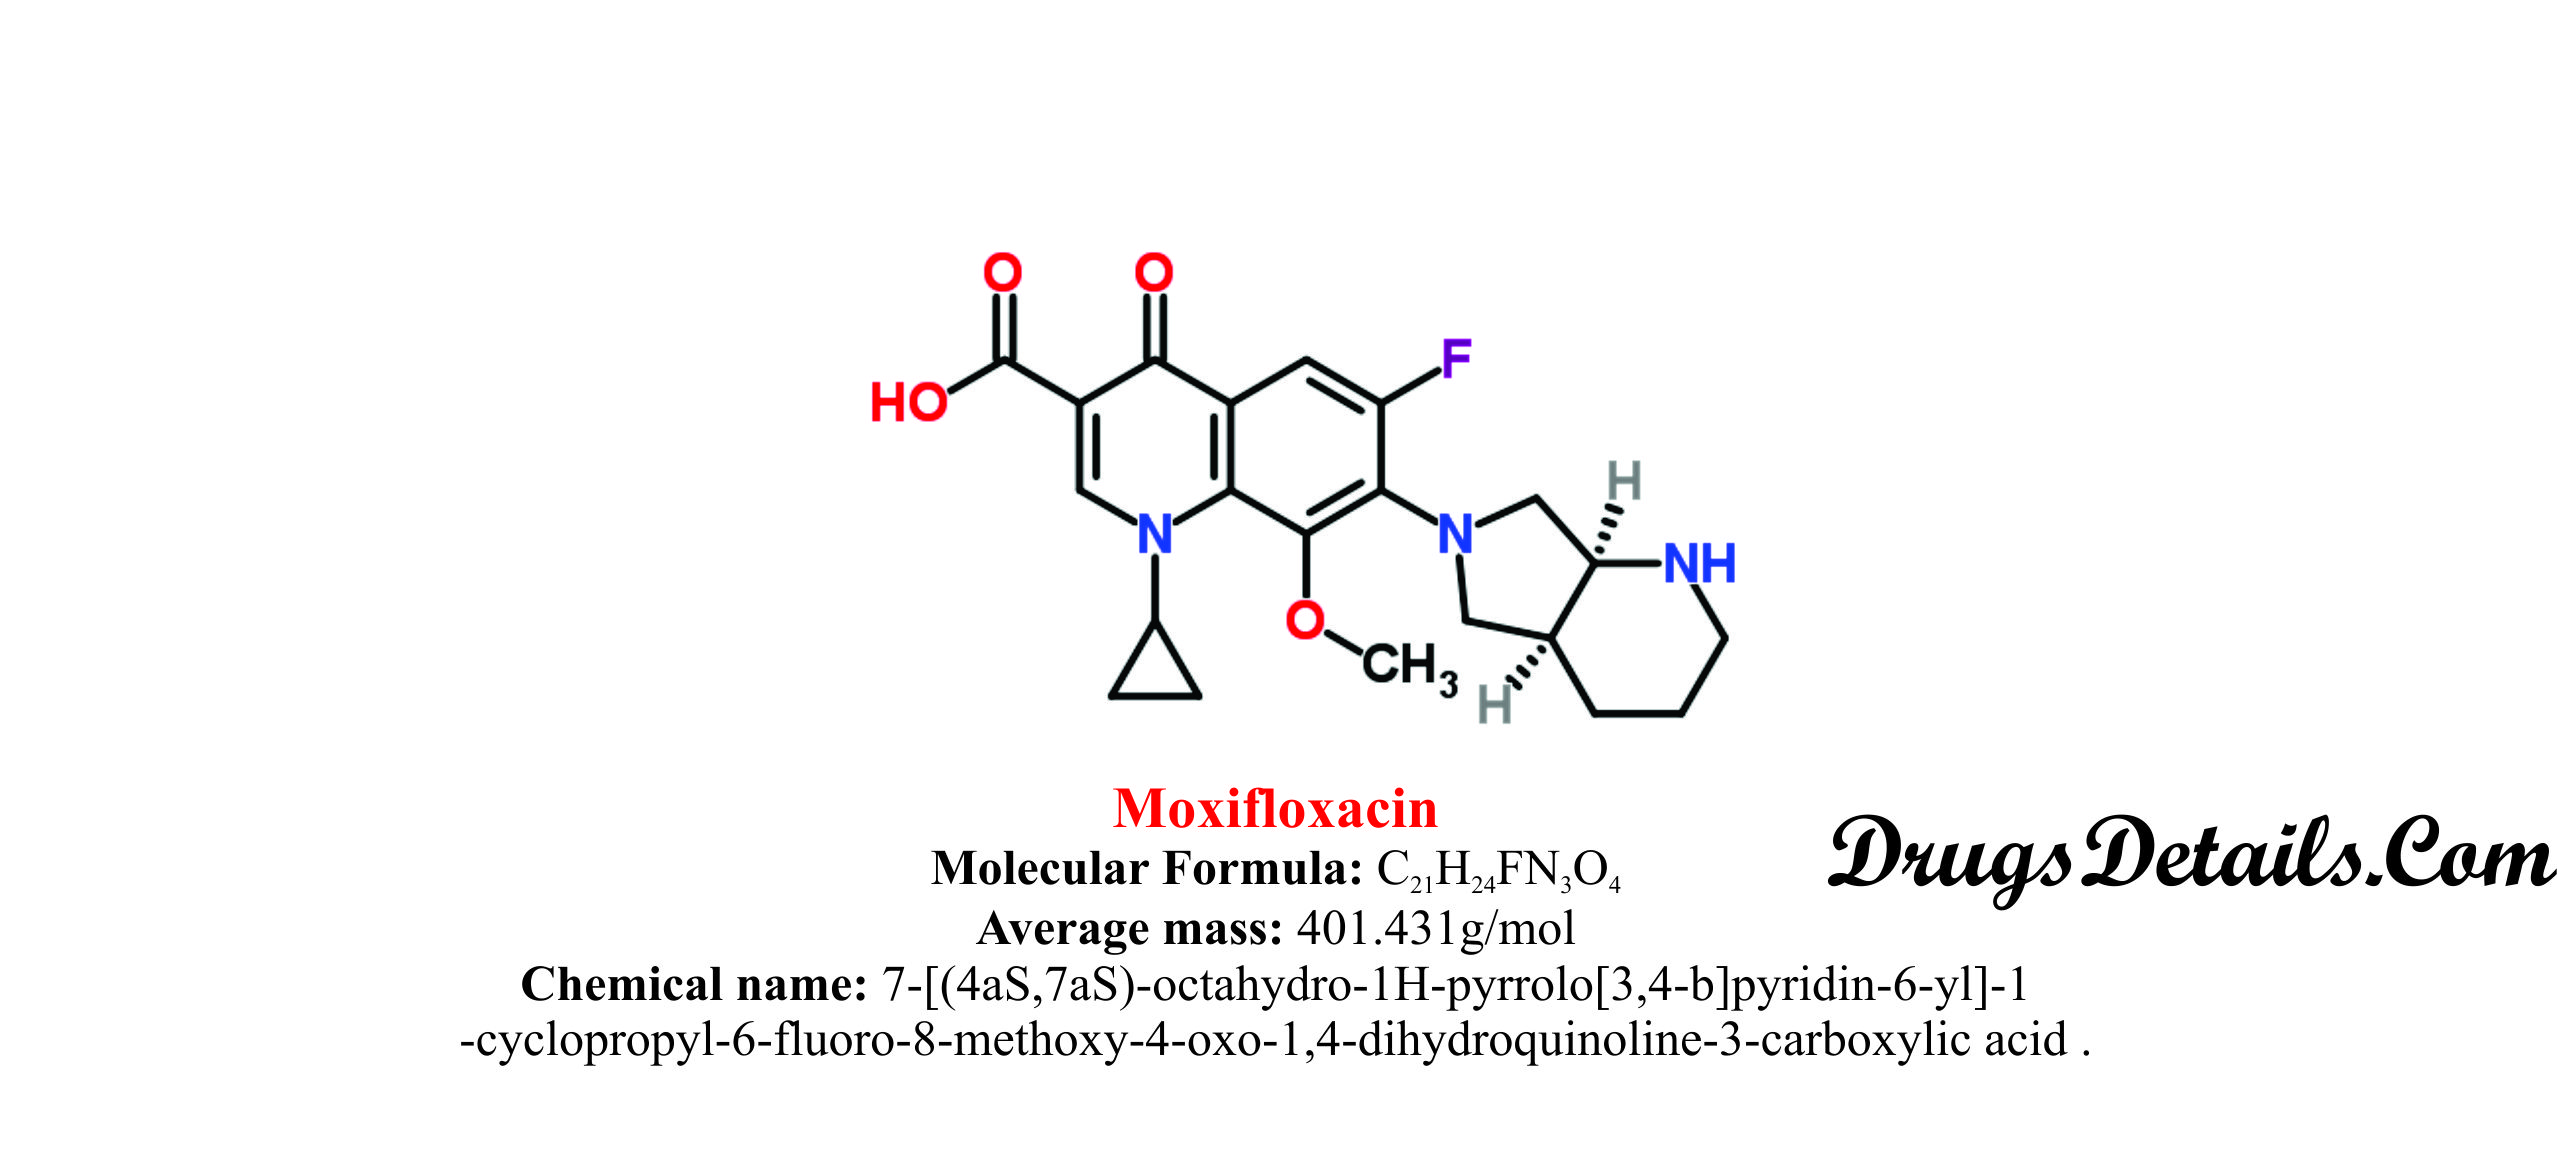 Moxifloxacin : Structure and chemical information.